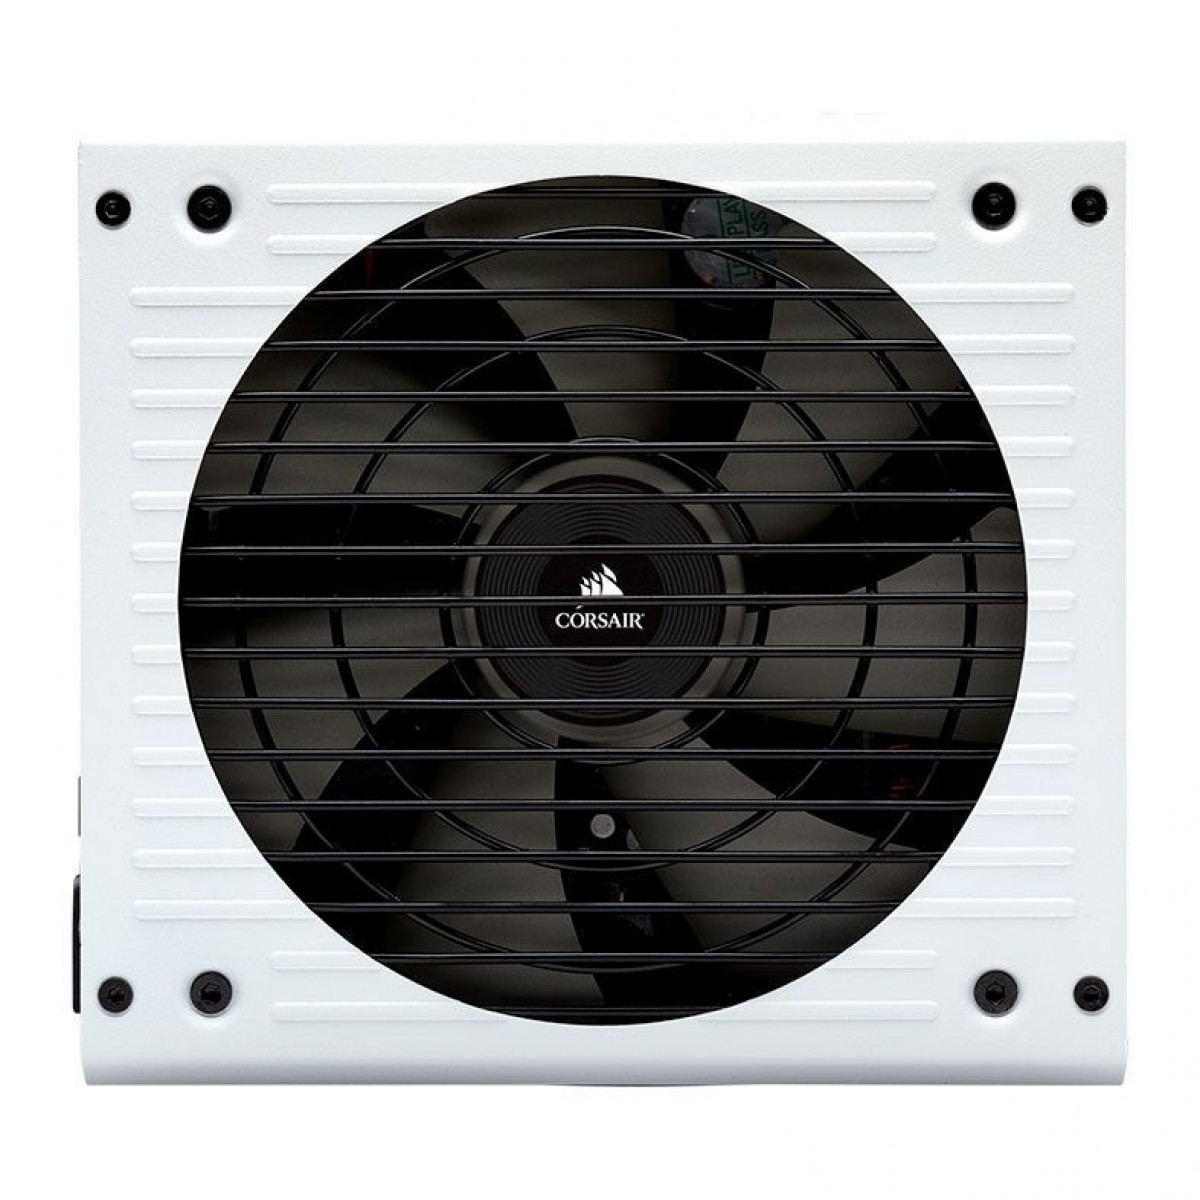 Fonte Corsair RM750x 750W, 80 Plus Gold, PFC Ativo, Full Modular, White, CP-9020187-WW